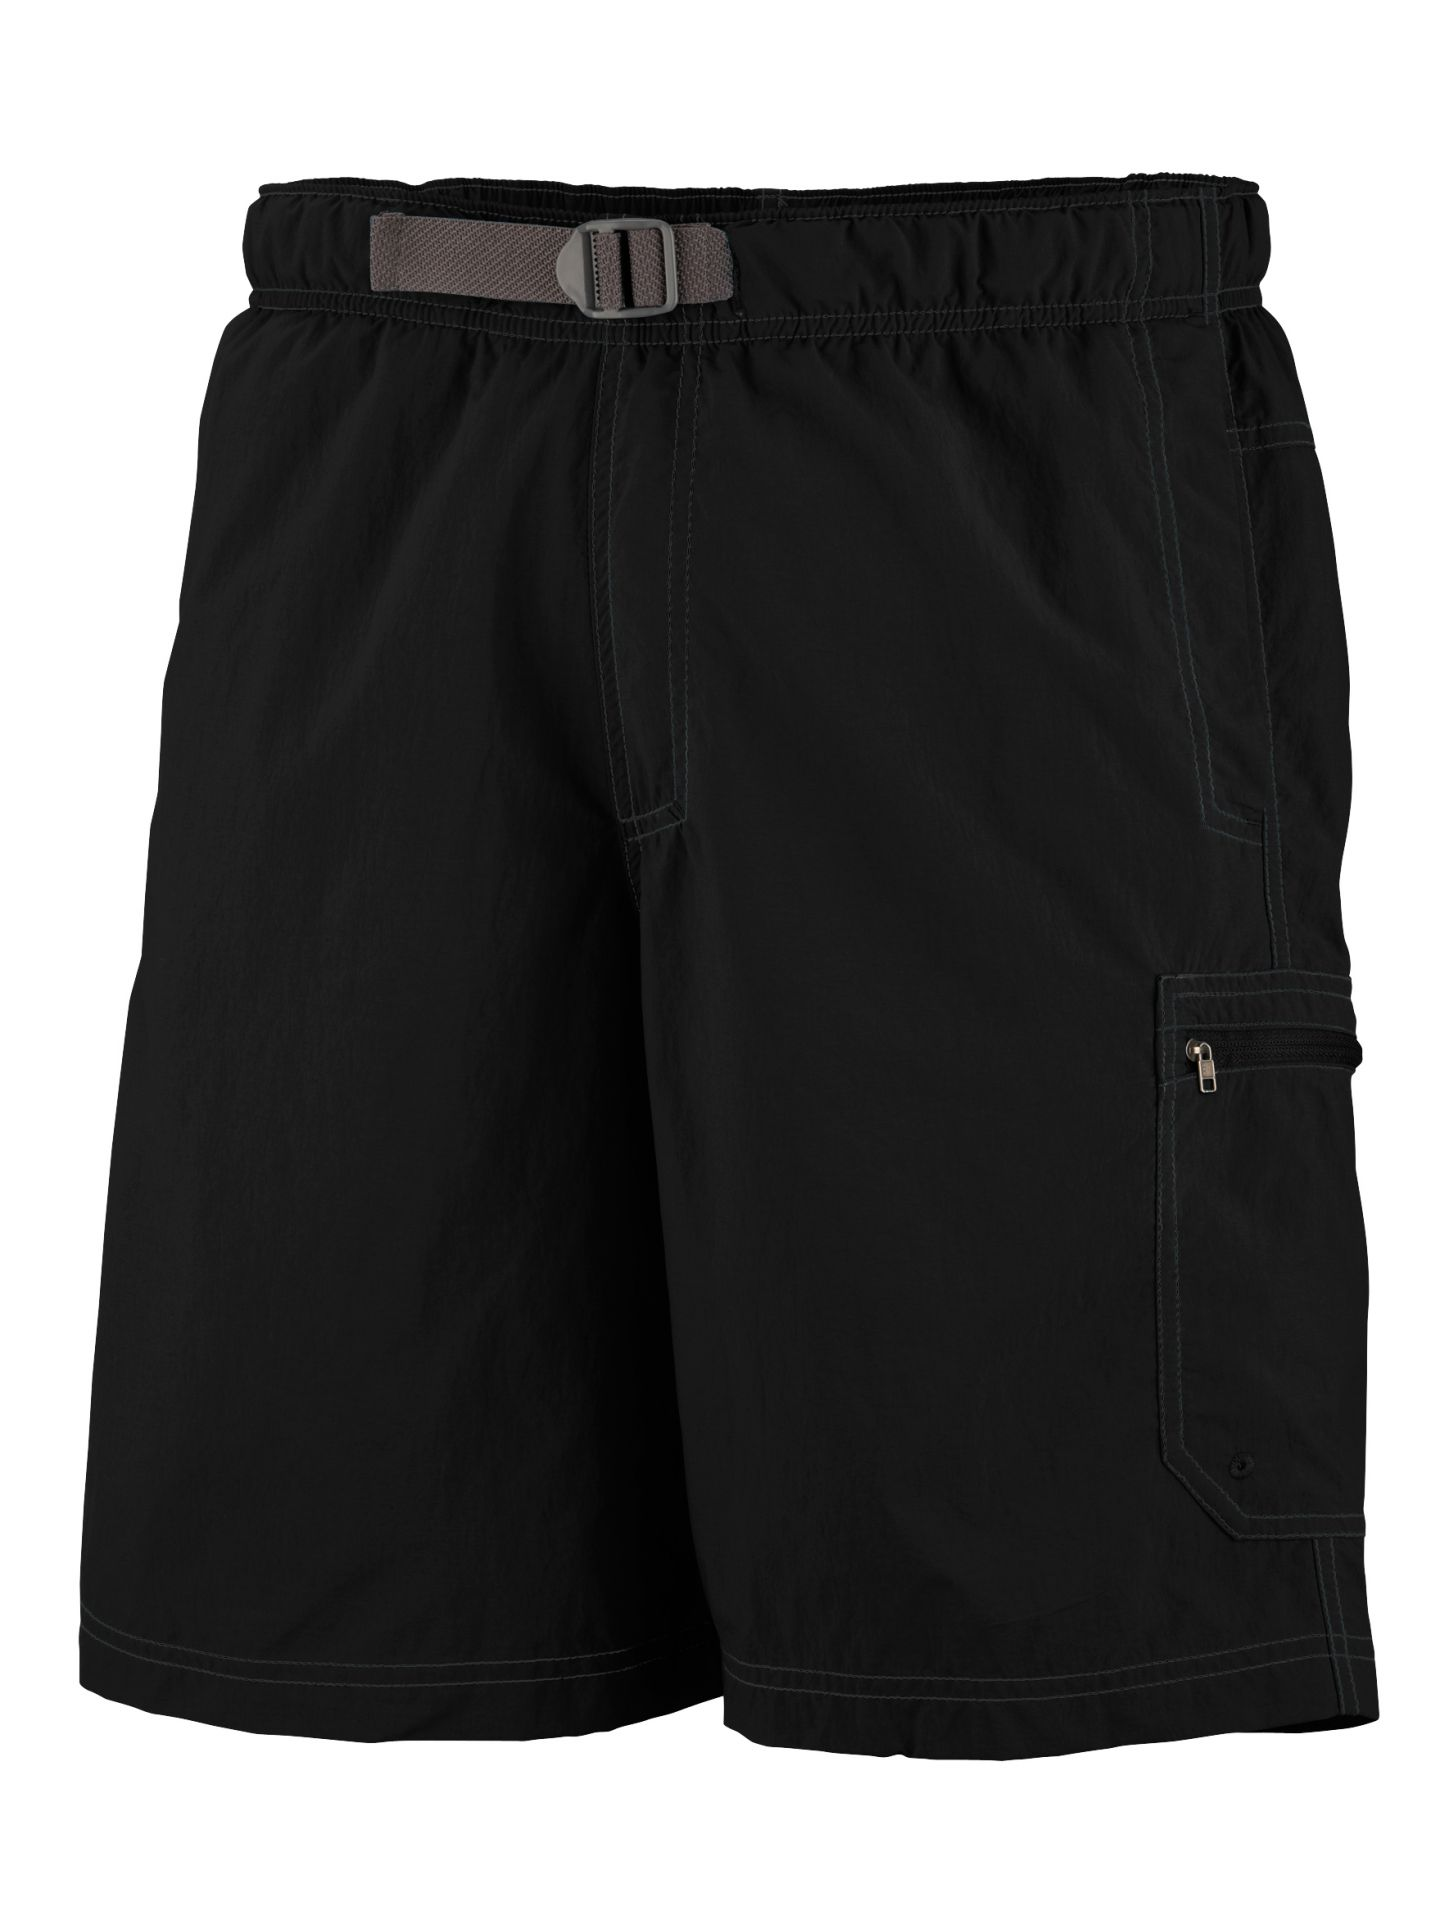 Columbia Men's Palmerston Peak Swim Short - Black - Medium